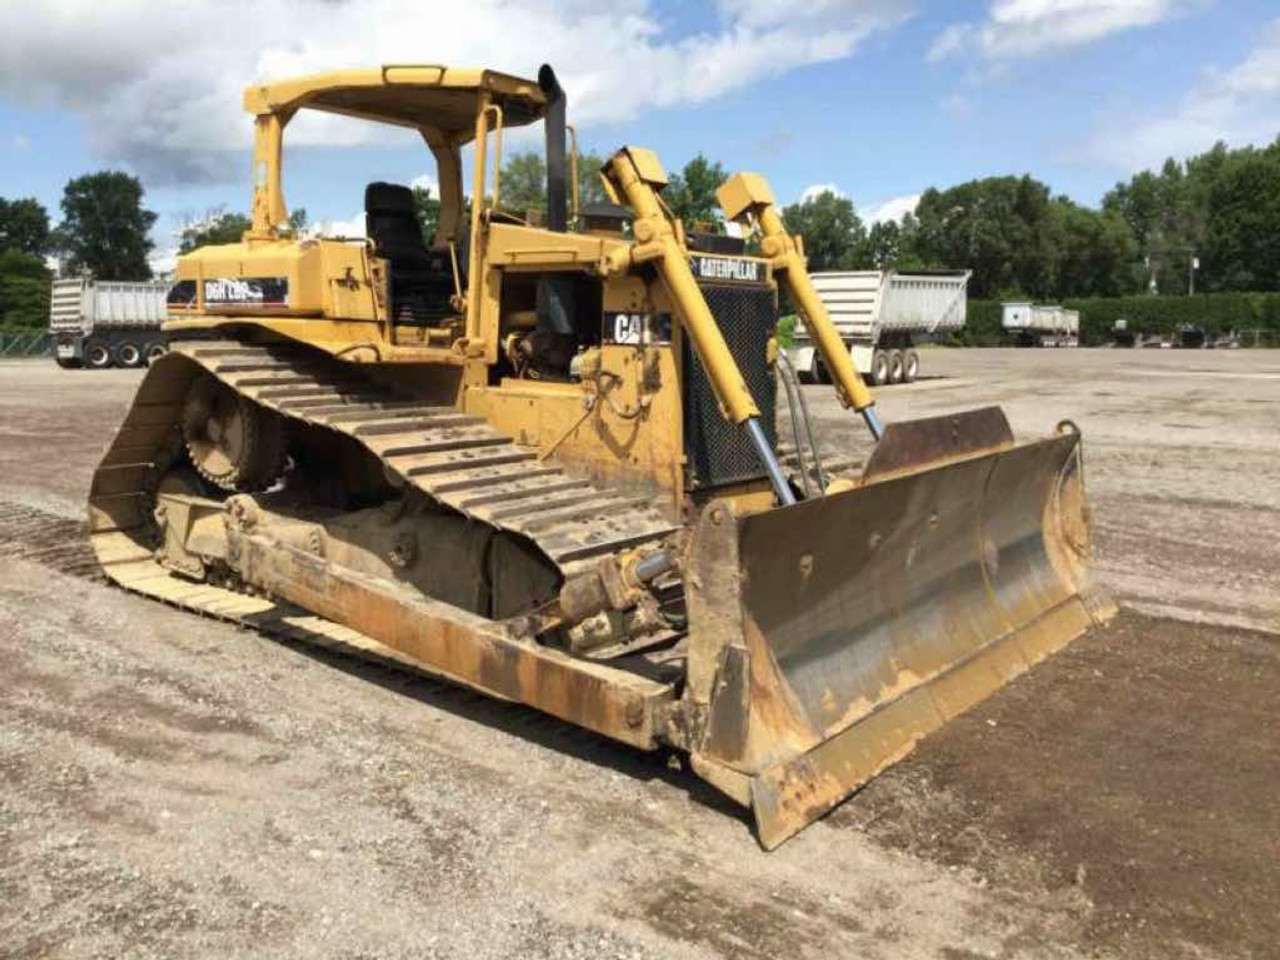 Caterpillar Bulldozer CATERPILLAR D6H LGP Fairly used Imported